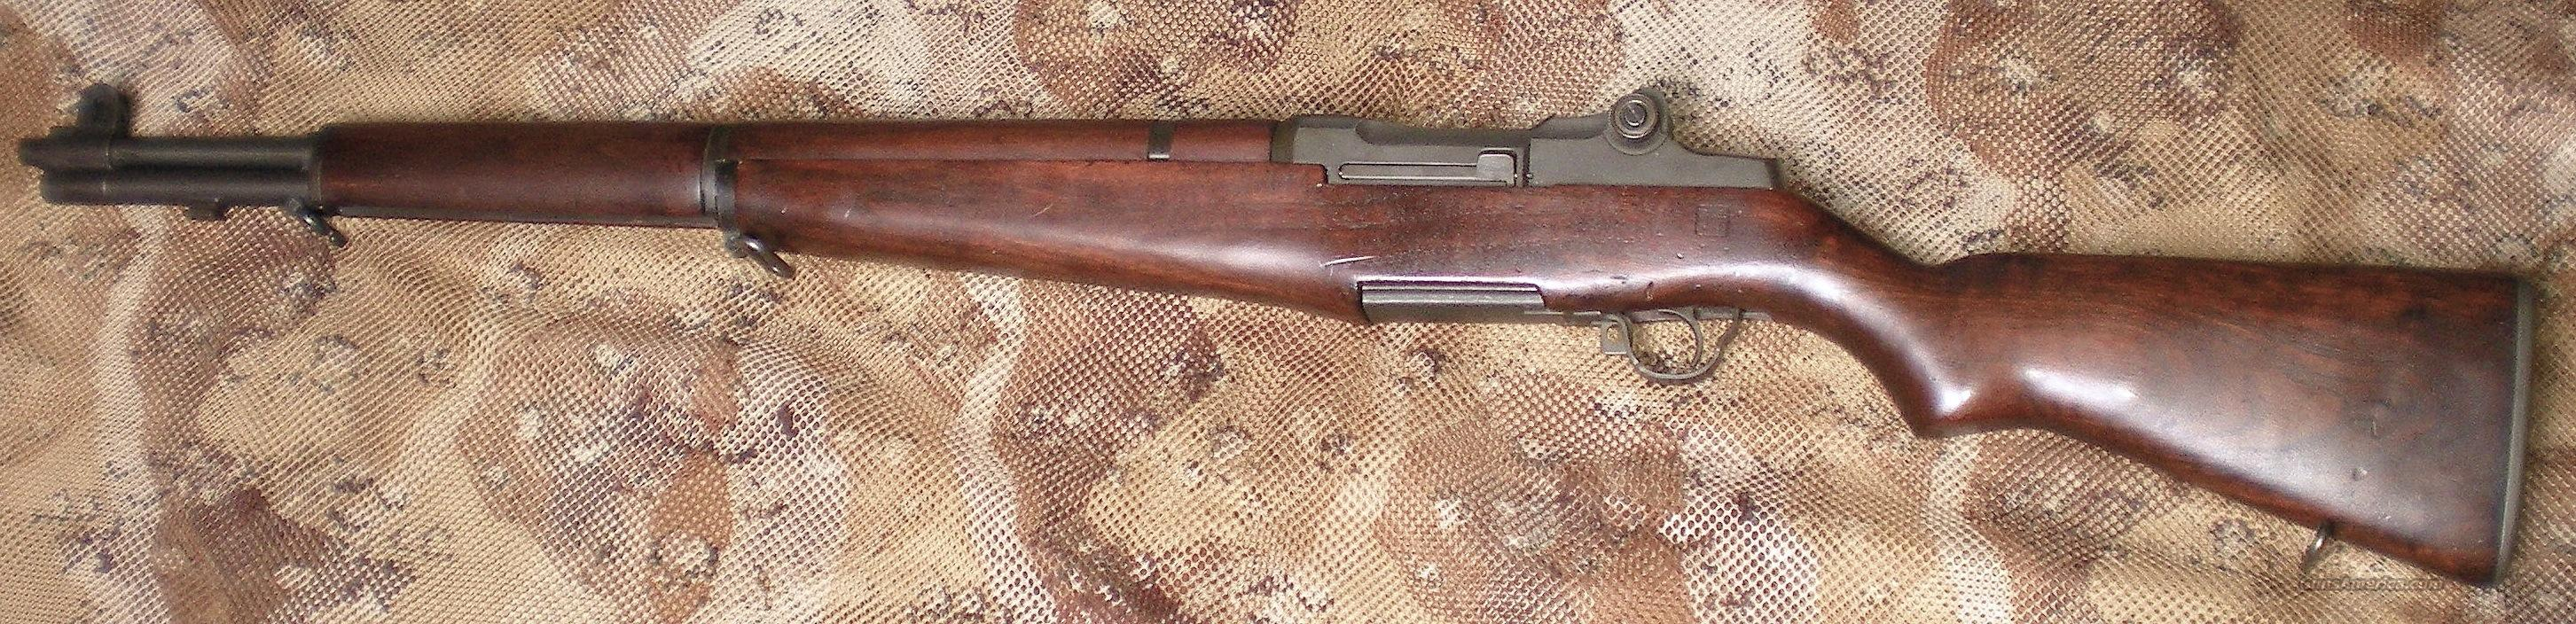 M1 Garand HRA/LMR Collector  Guns > Rifles > Military Misc. Rifles US > M1 Garand